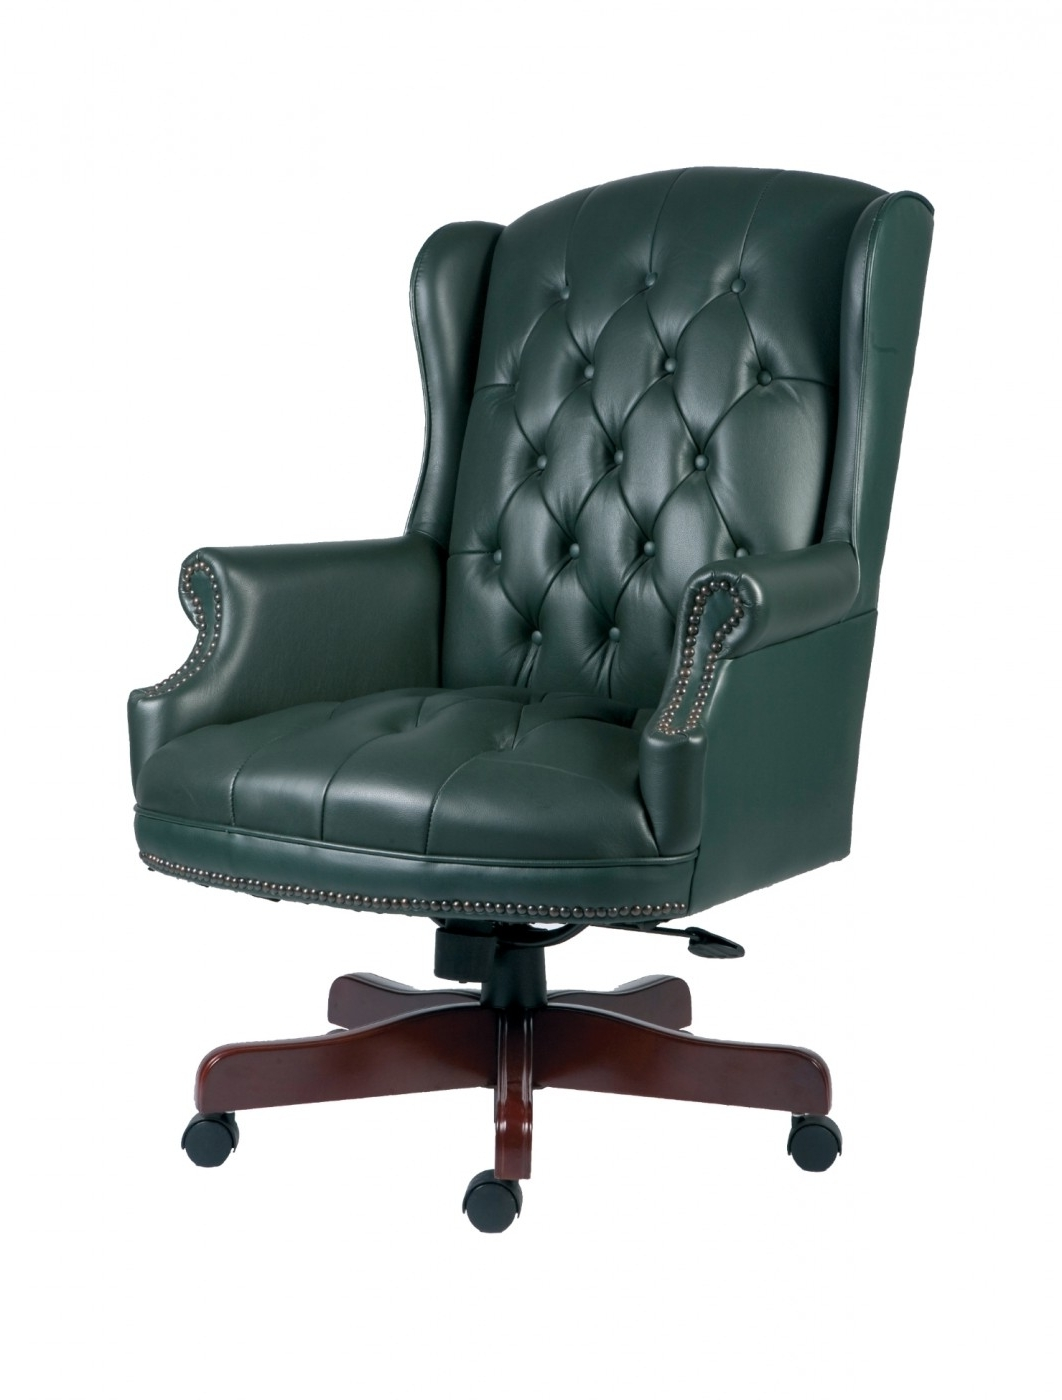 Plush Executive Office Chairs With Newest Teknik Chairman Leather Executive Chair B800 Green (View 20 of 20)